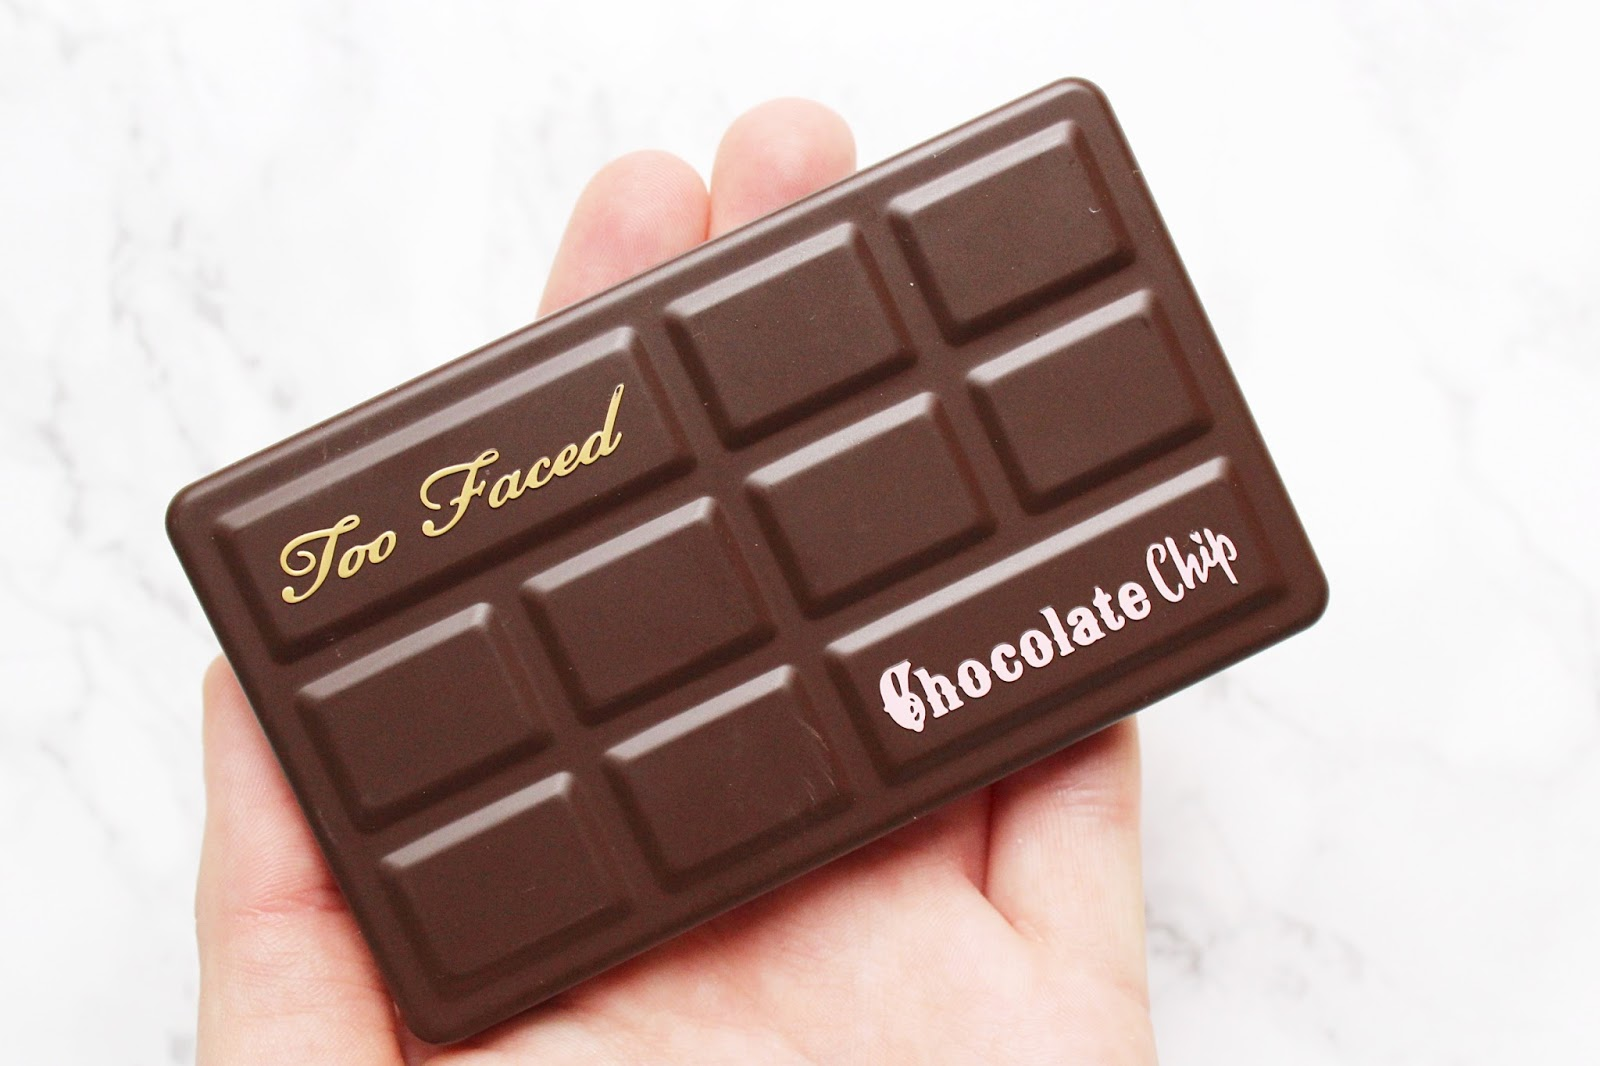 Too Faced Matte Chocolate Chip Palette Review with Swatches